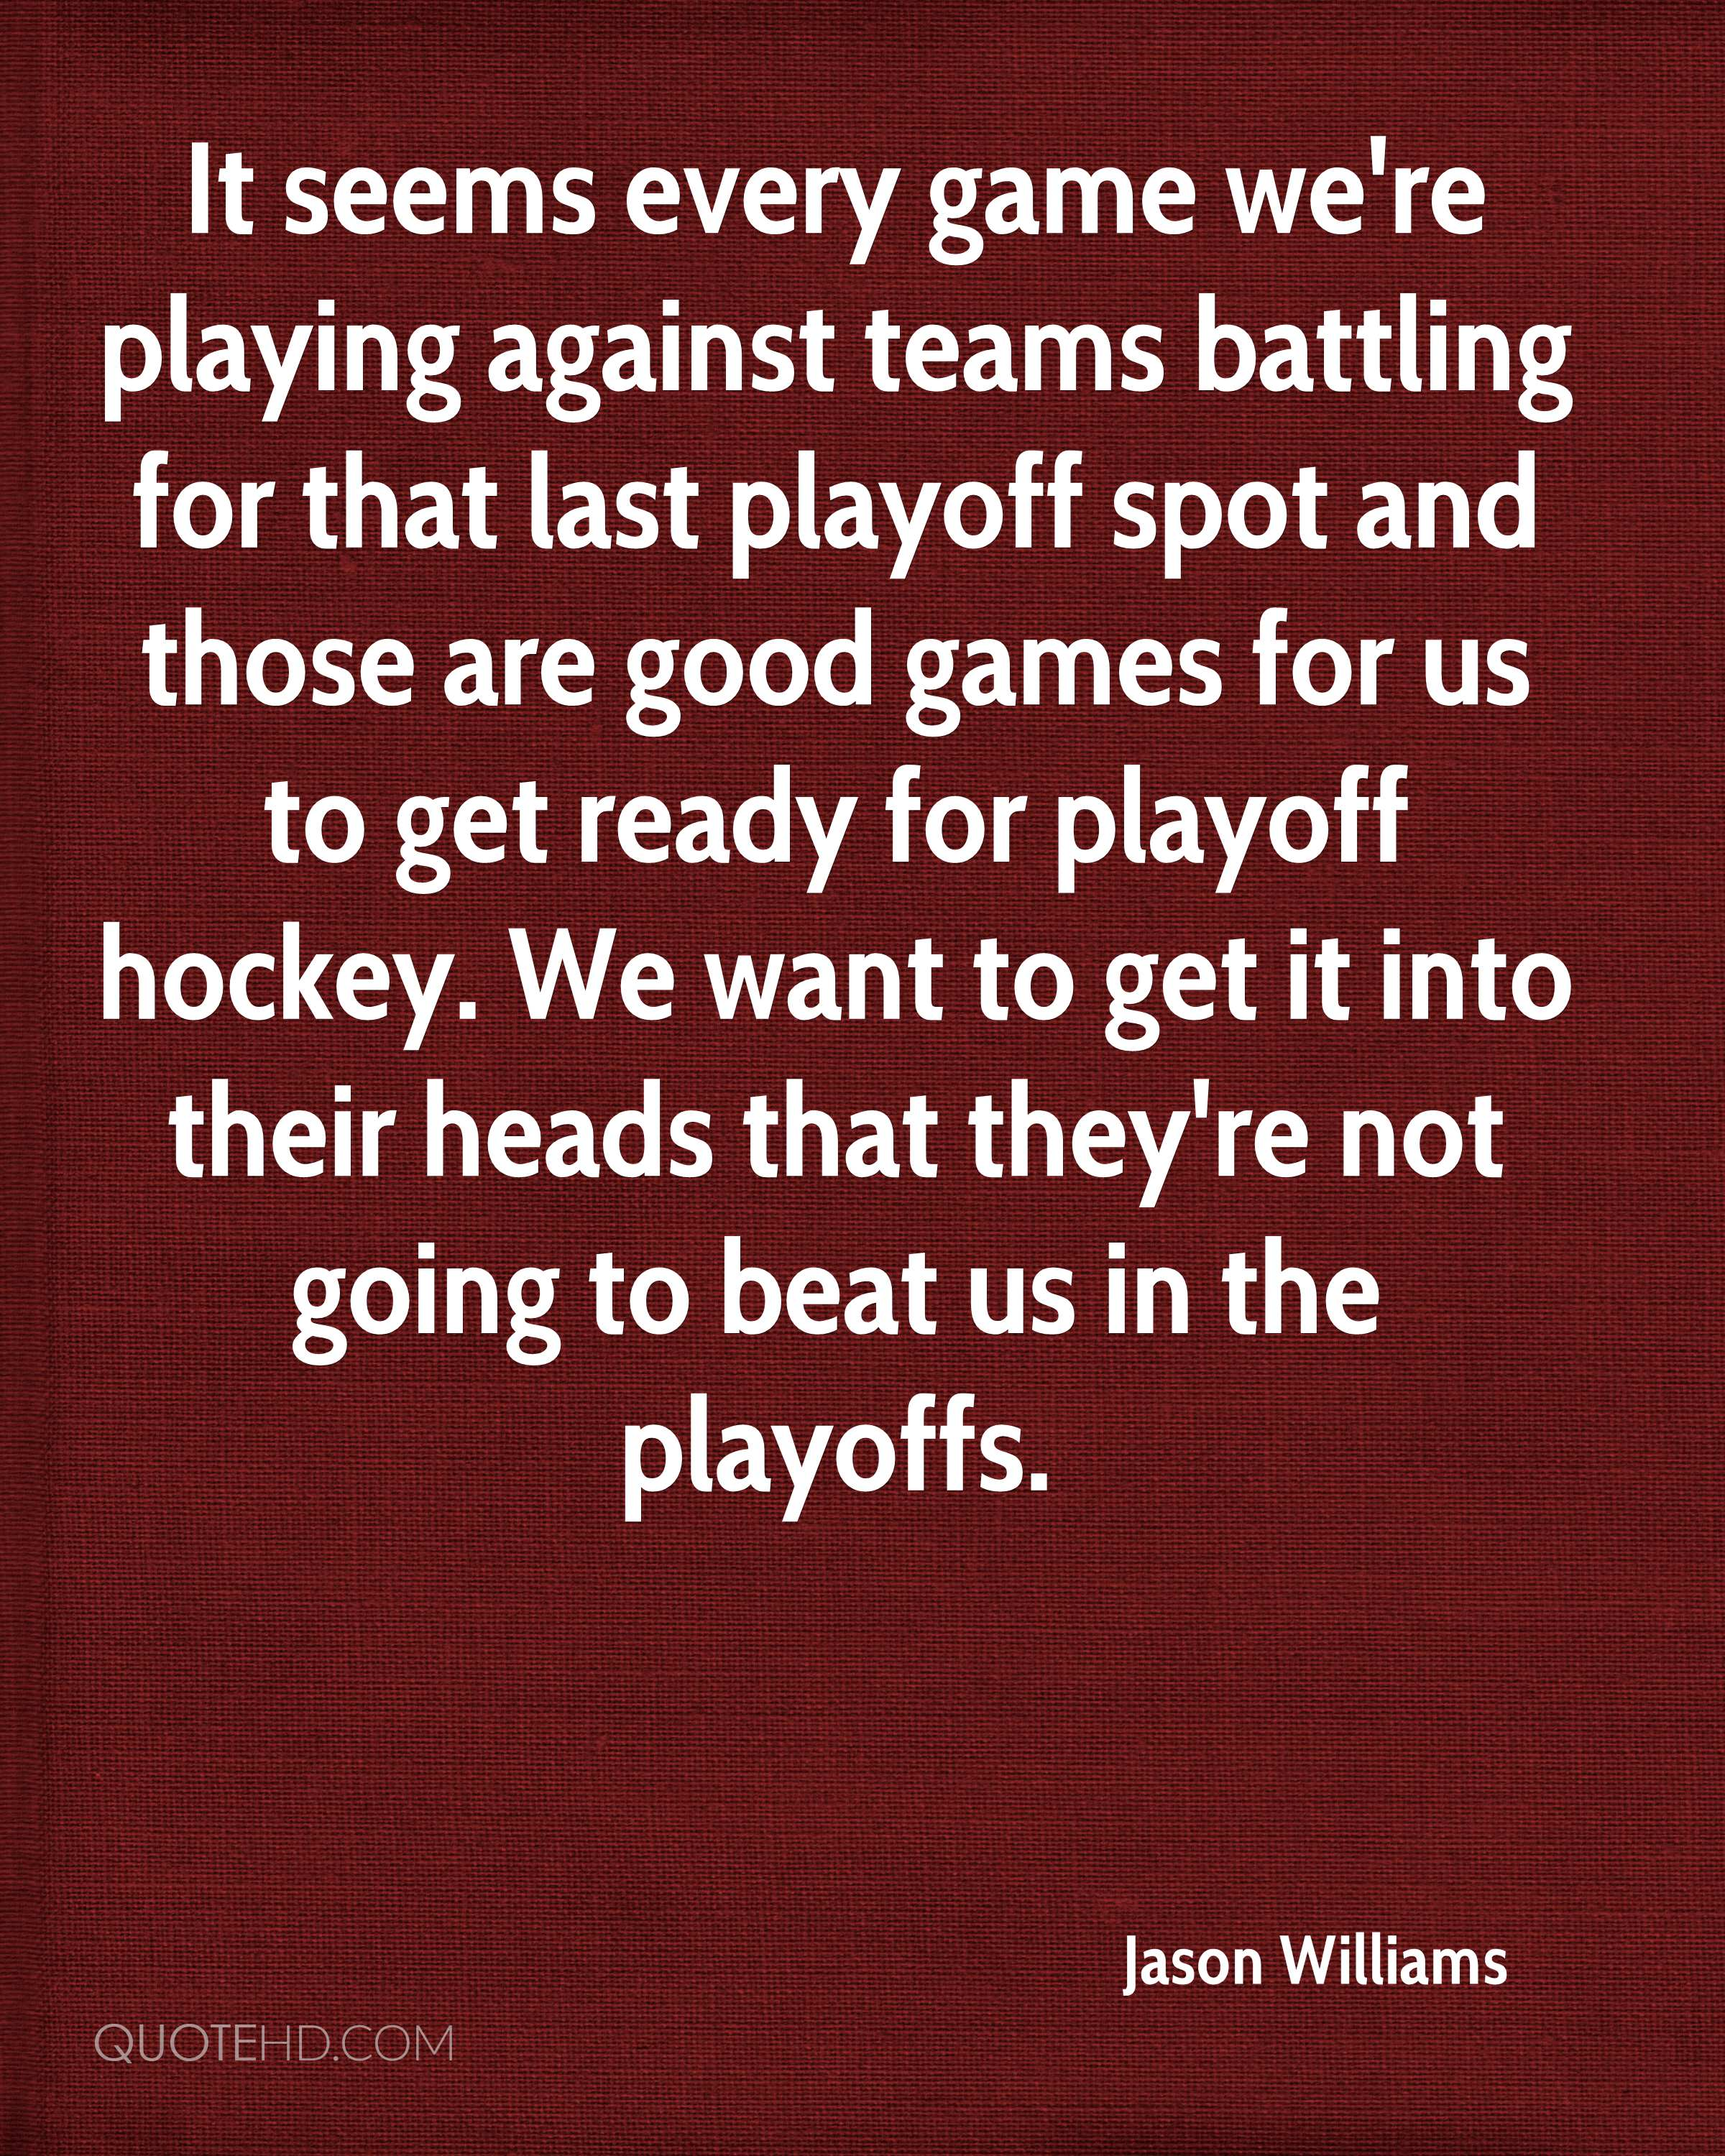 It seems every game we're playing against teams battling for that last playoff spot and those are good games for us to get ready for playoff hockey. We want to get it into their heads that they're not going to beat us in the playoffs.